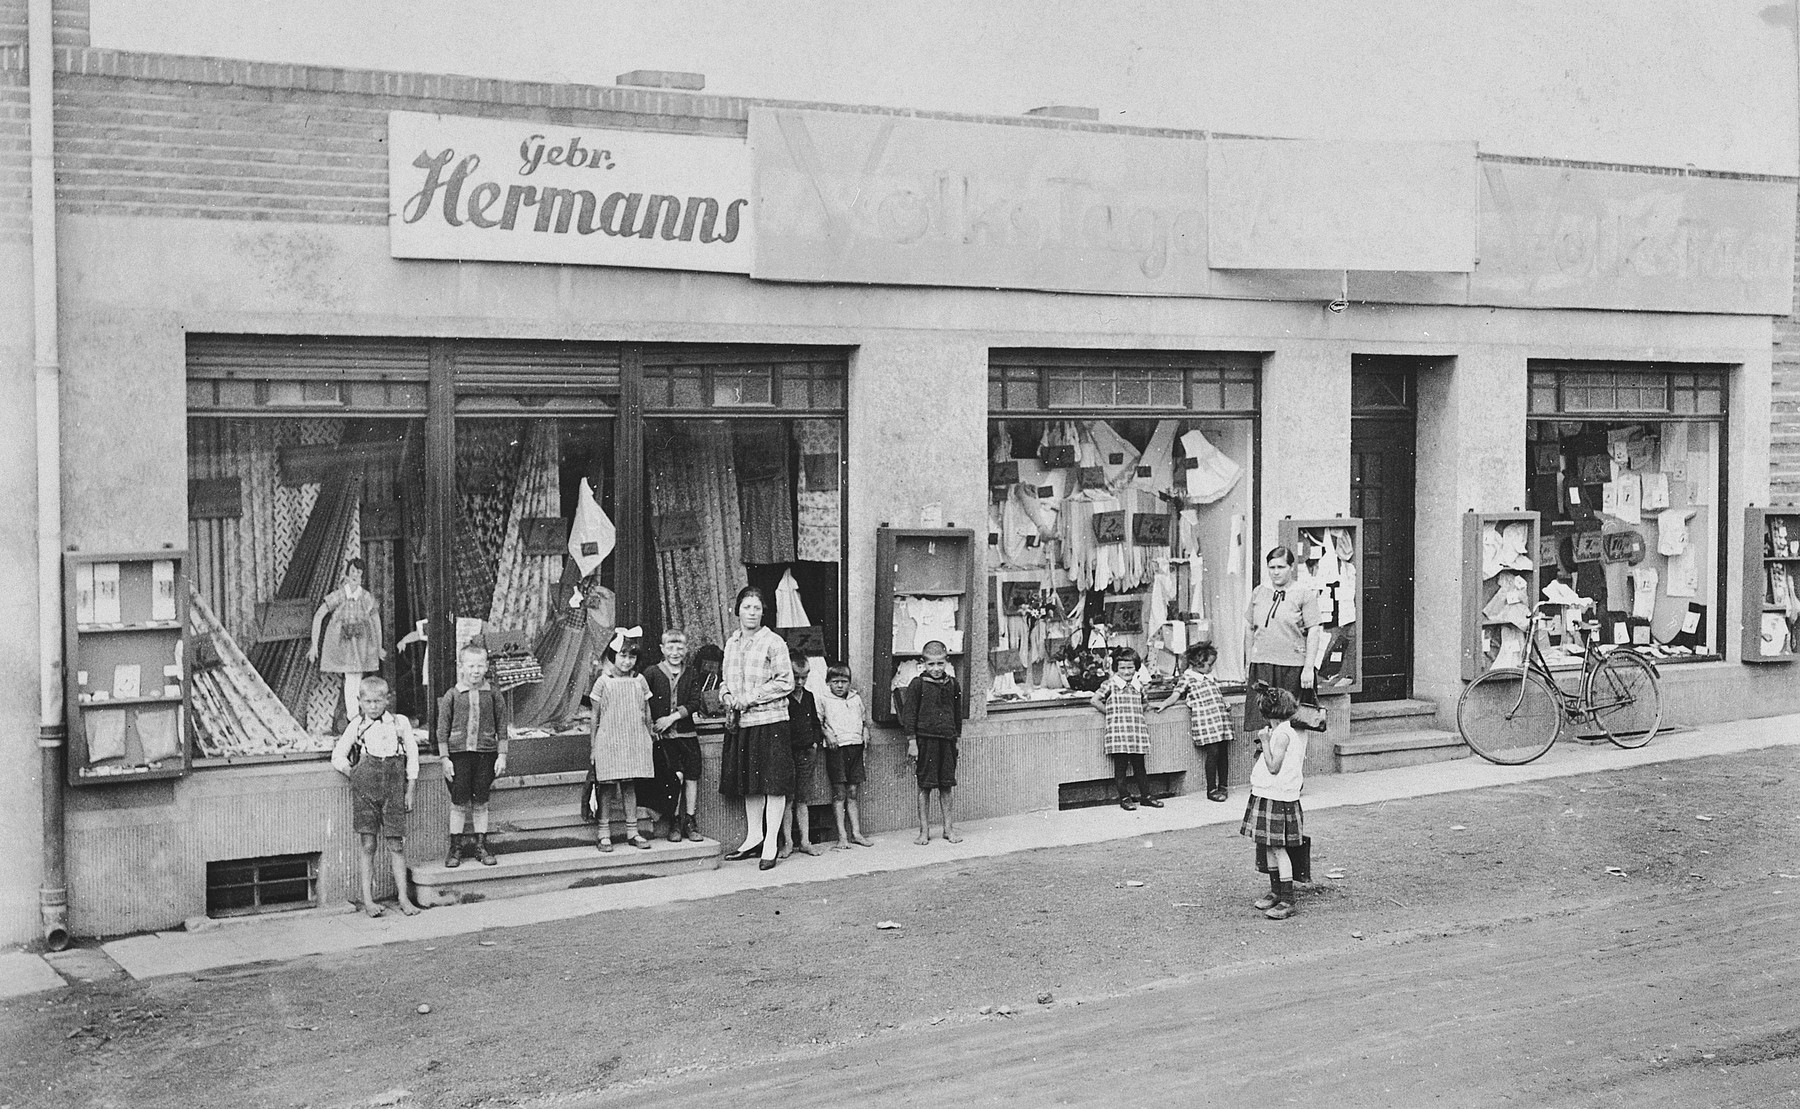 Members of the Hermanns family pose outside their dry goods store in Moenchengladbach, Germany.